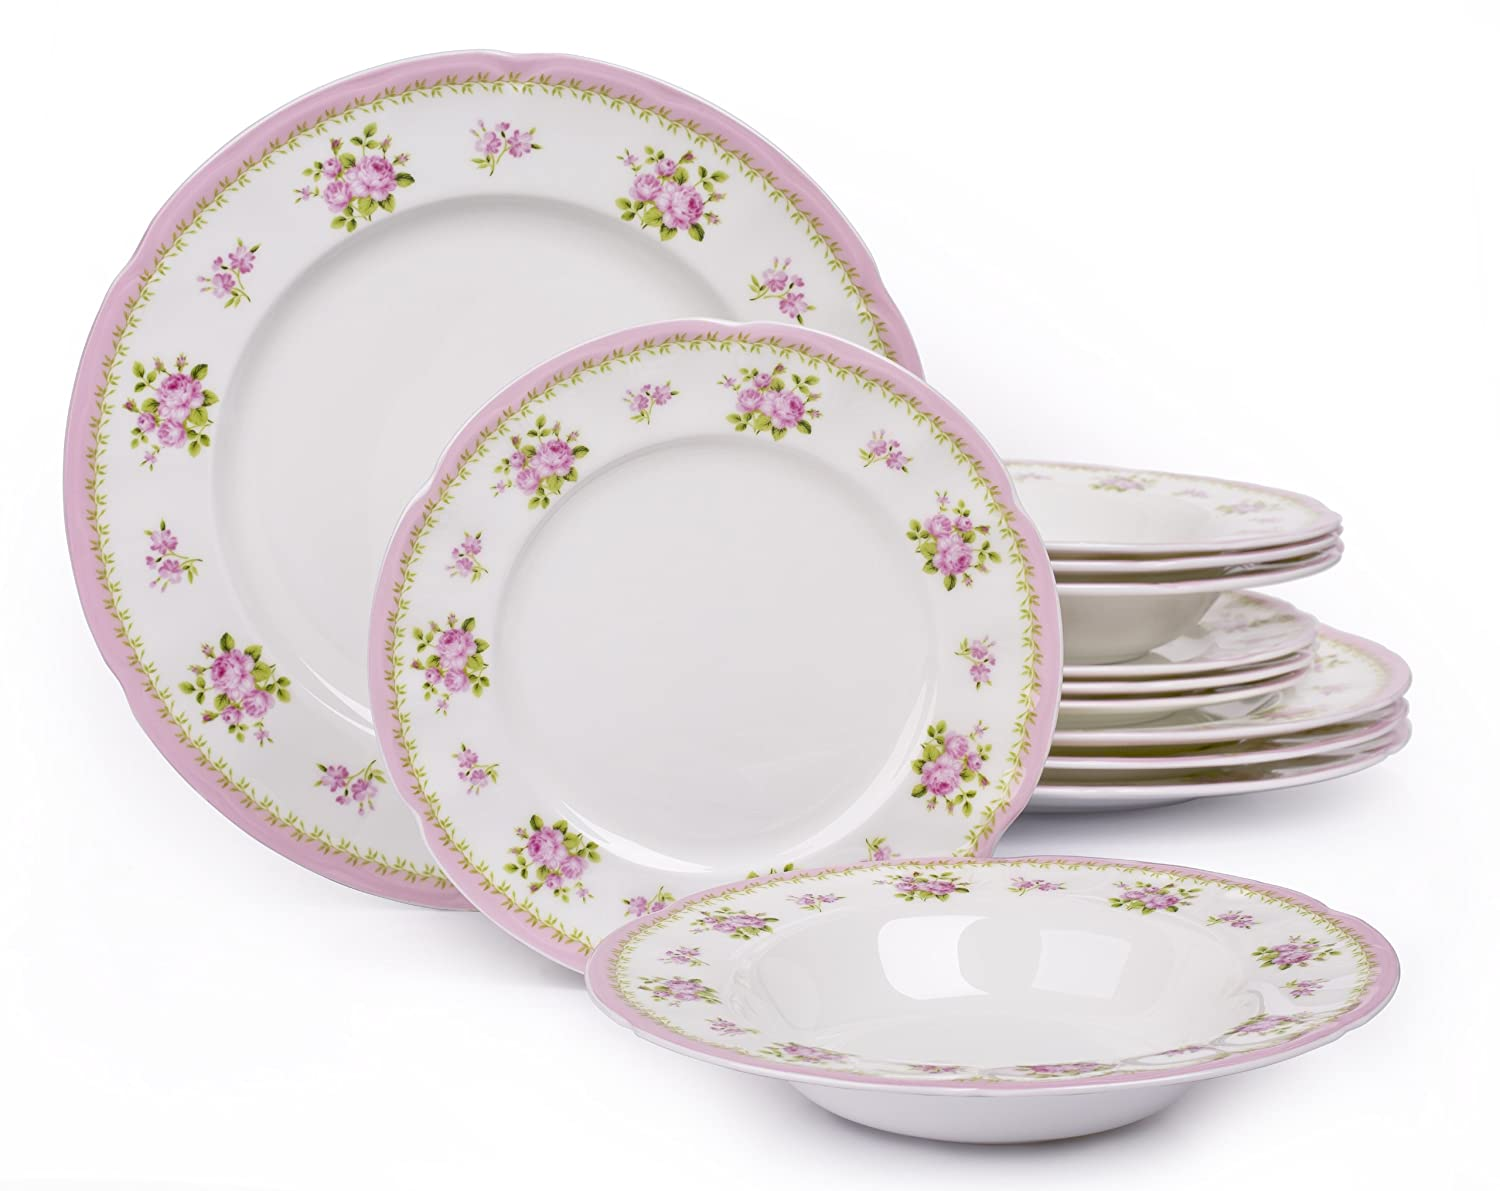 Beautiful 12 Piece Vintage Rose Bone China Dinner Set: Amazon.co.uk: Kitchen U0026 Home